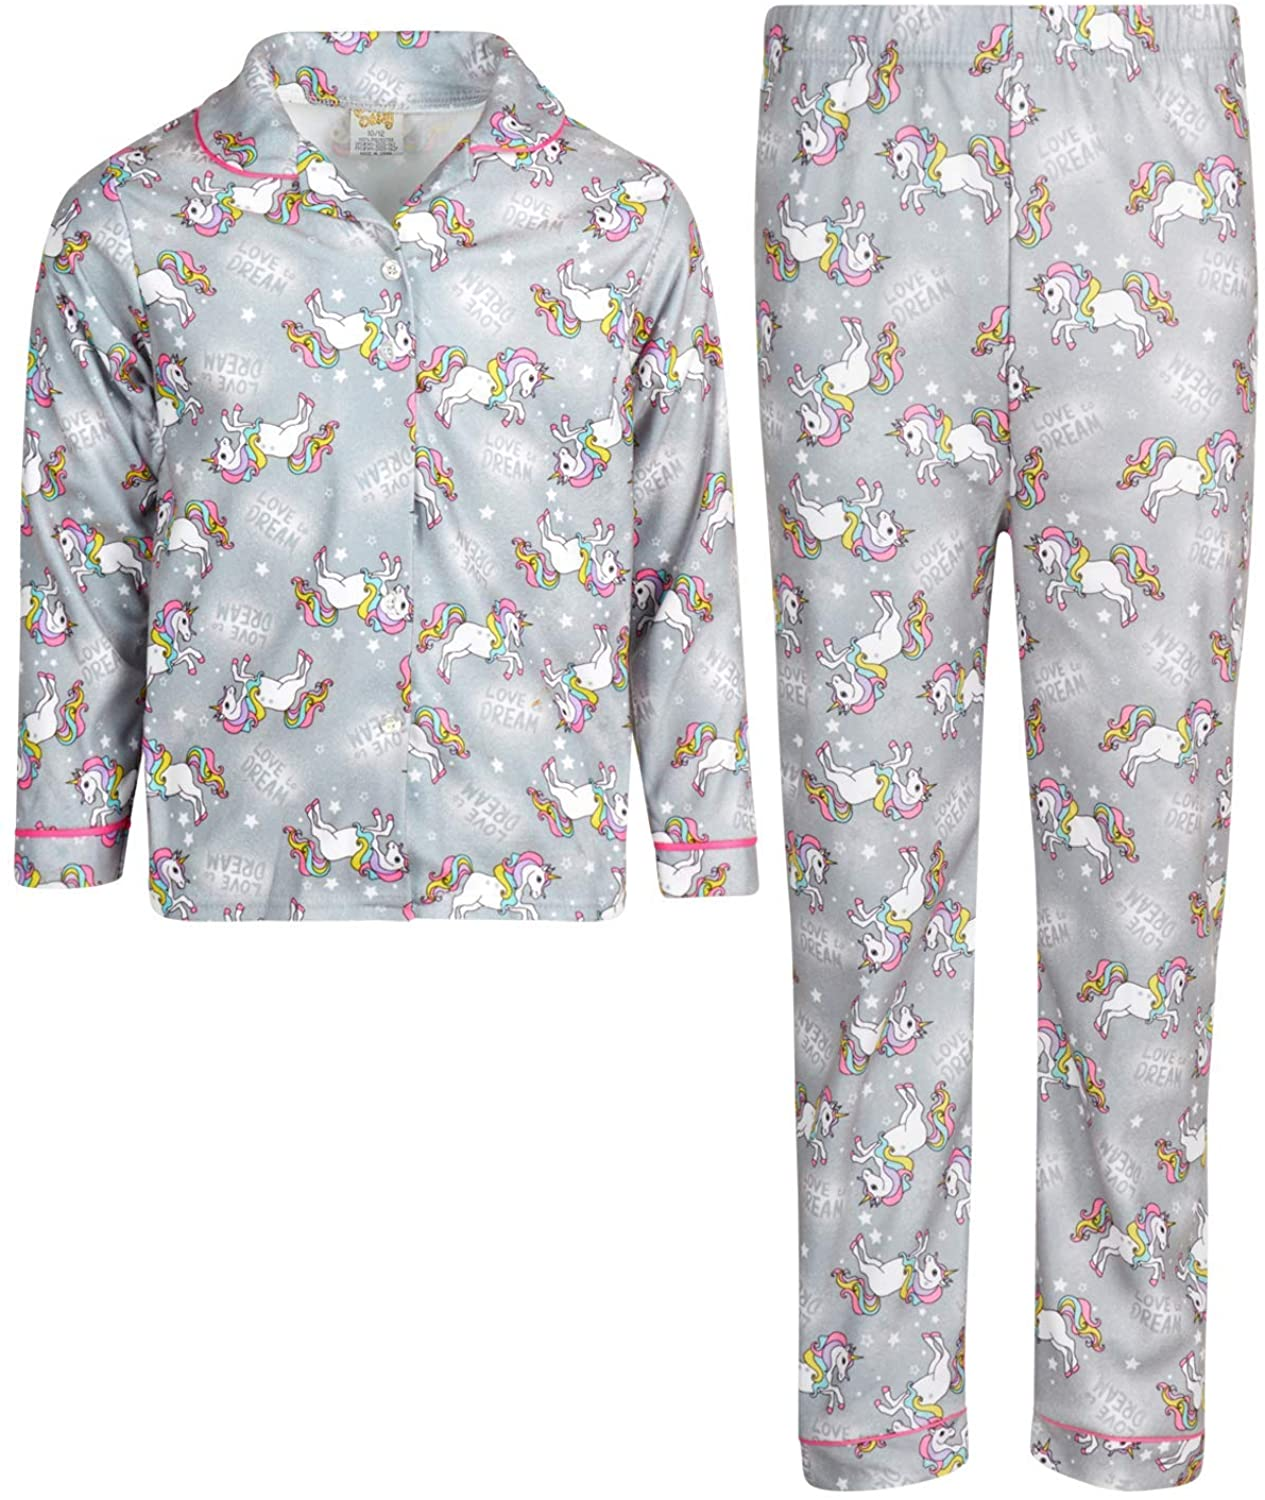 Sweet & Sassy Girl's Flannel Pajamas - 2 Piece Long Sleeve Button Down Shirt and Pants Sleepwear Set